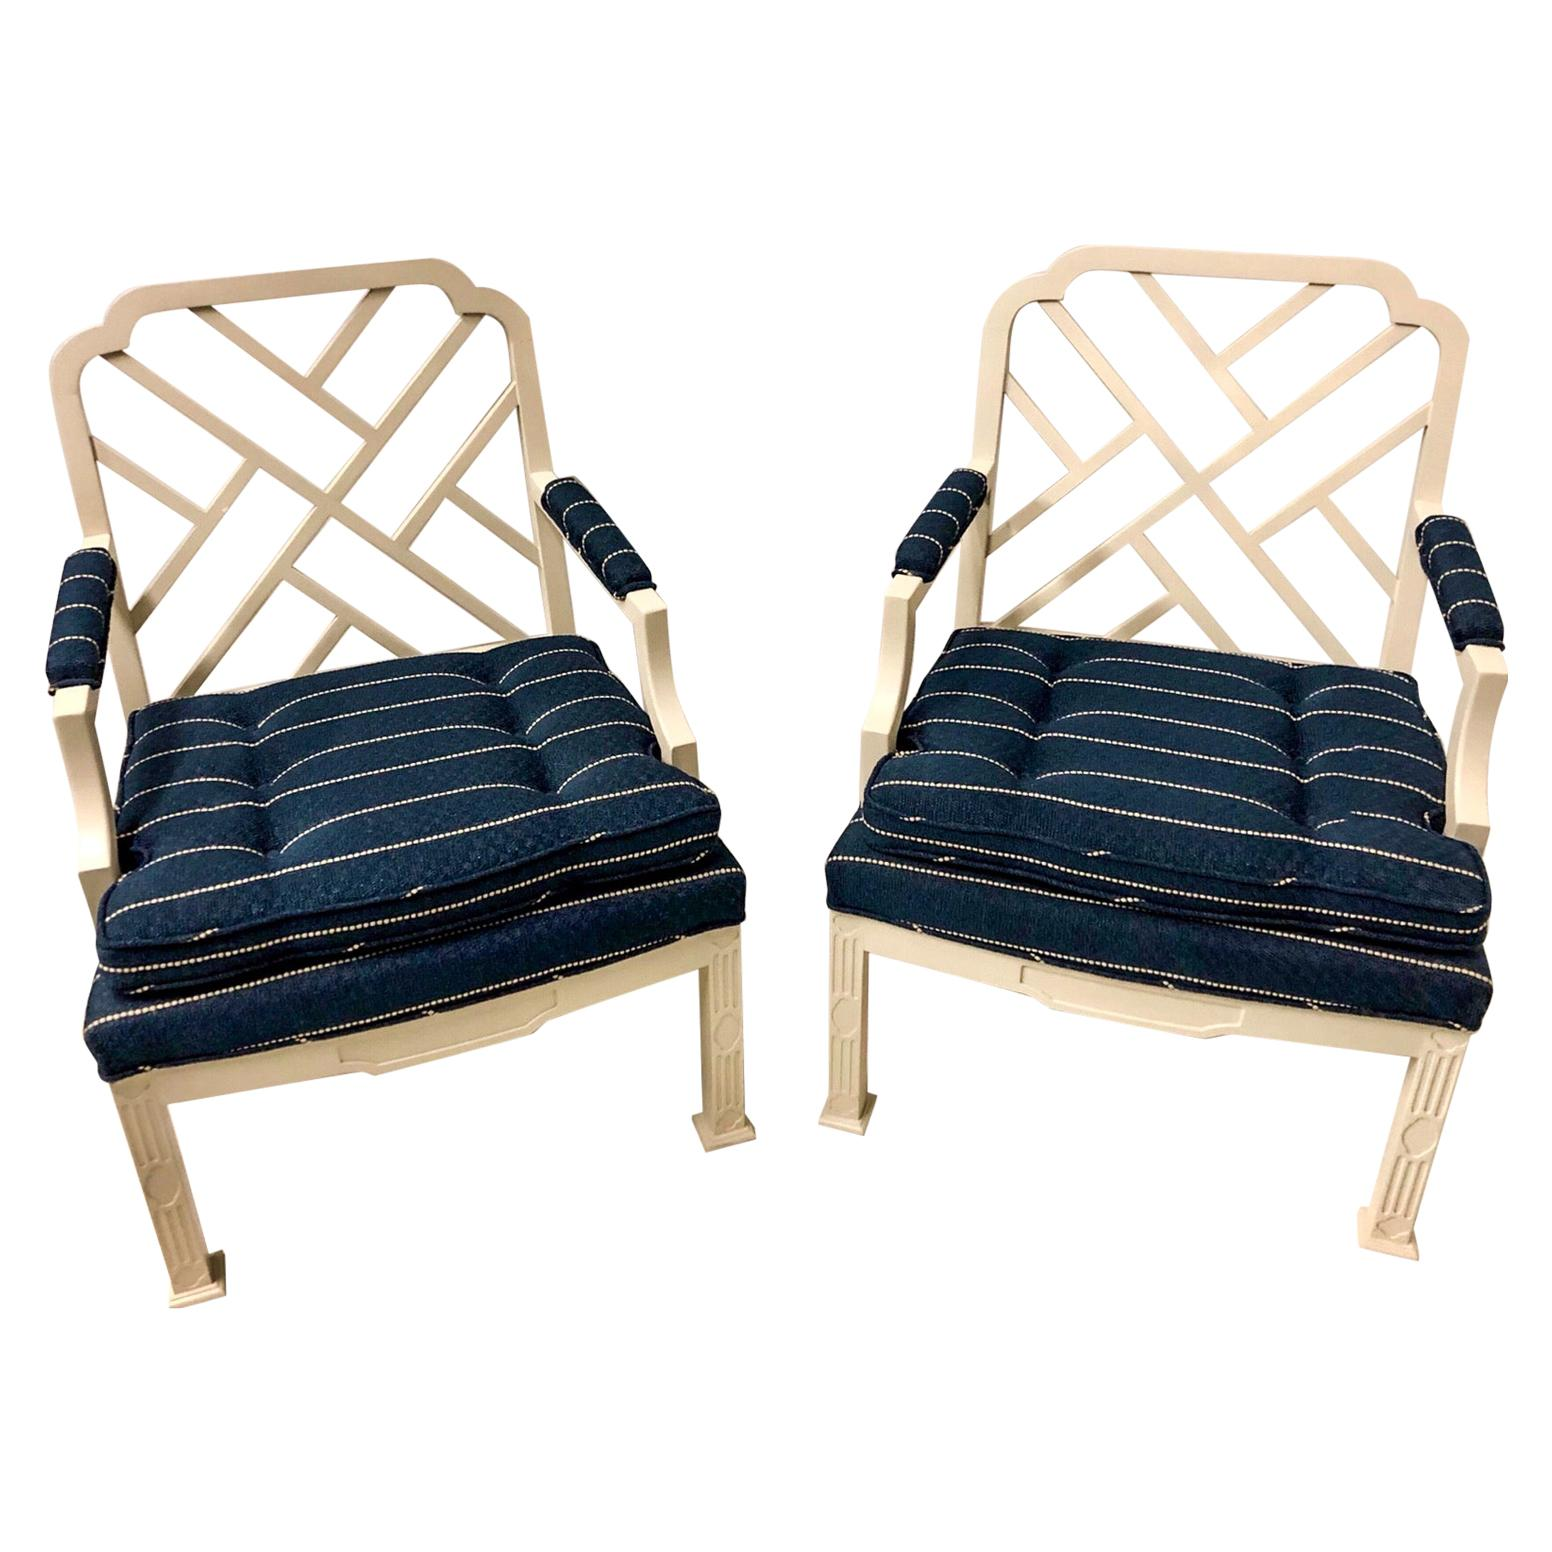 1970s Chinese Chippendale Style Chairs by Erwin Lambeth -A Pair